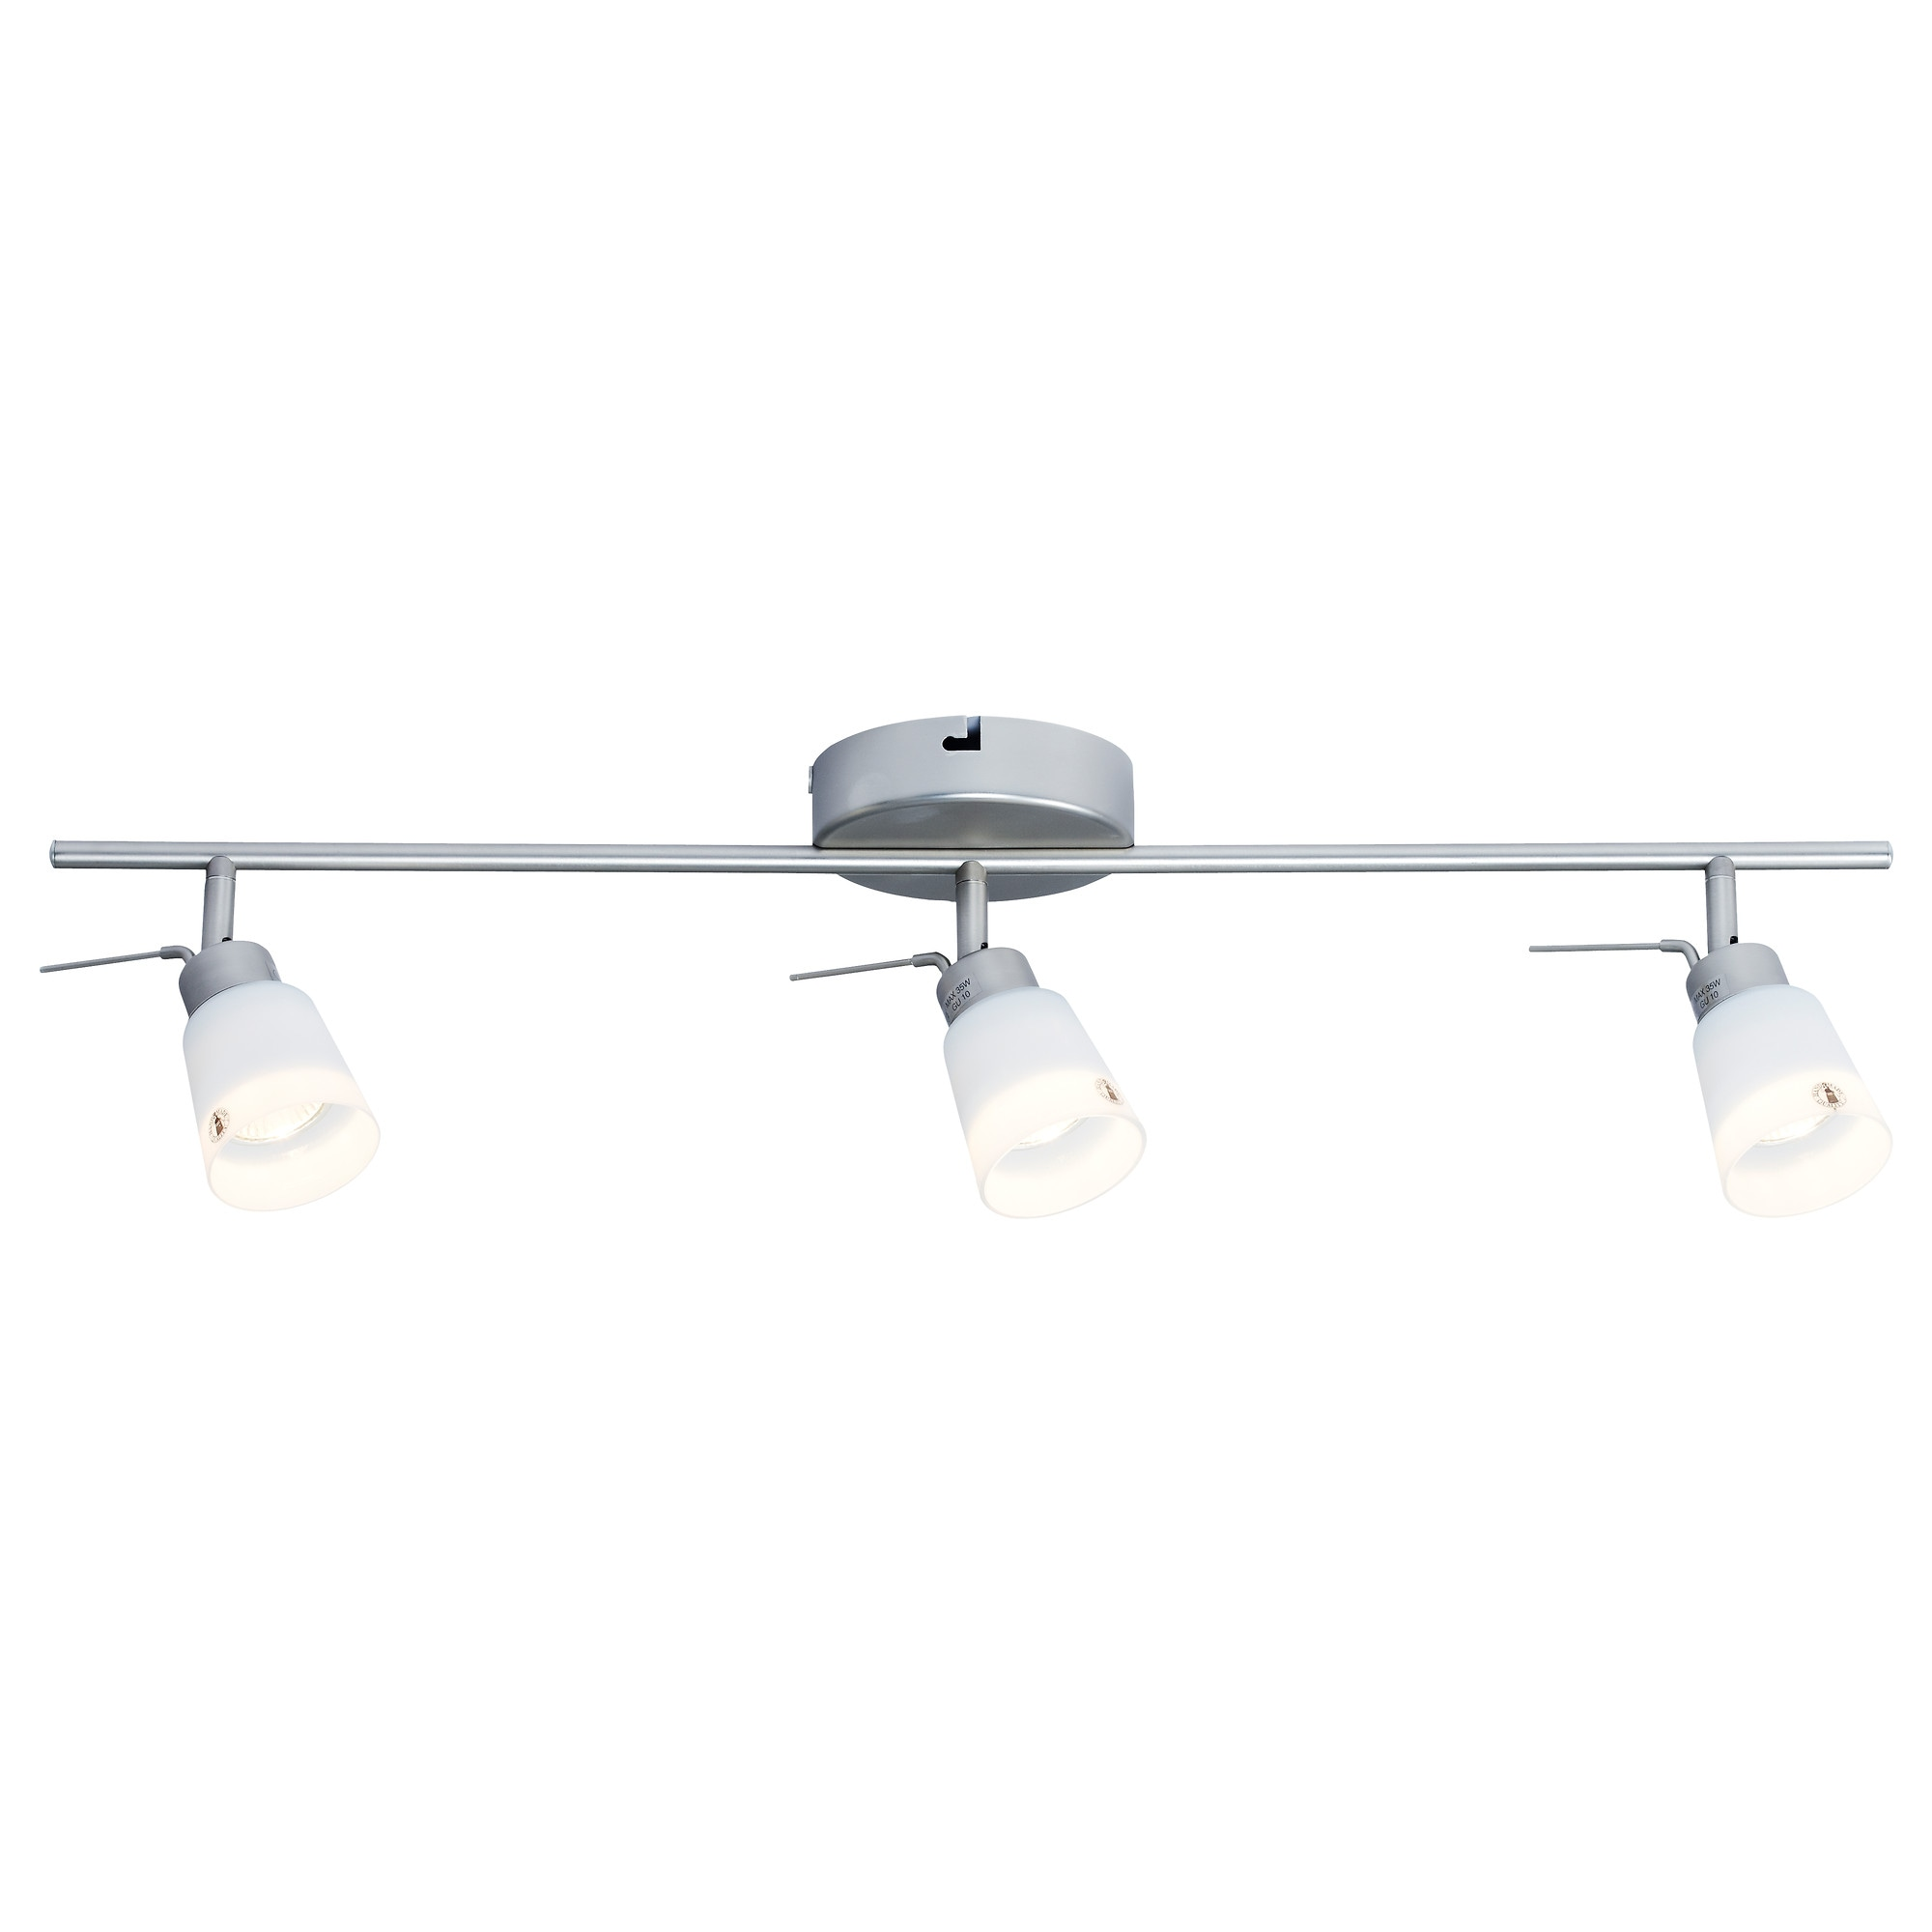 flexible track lighting ikea. Flexible Track Lighting Ikea T